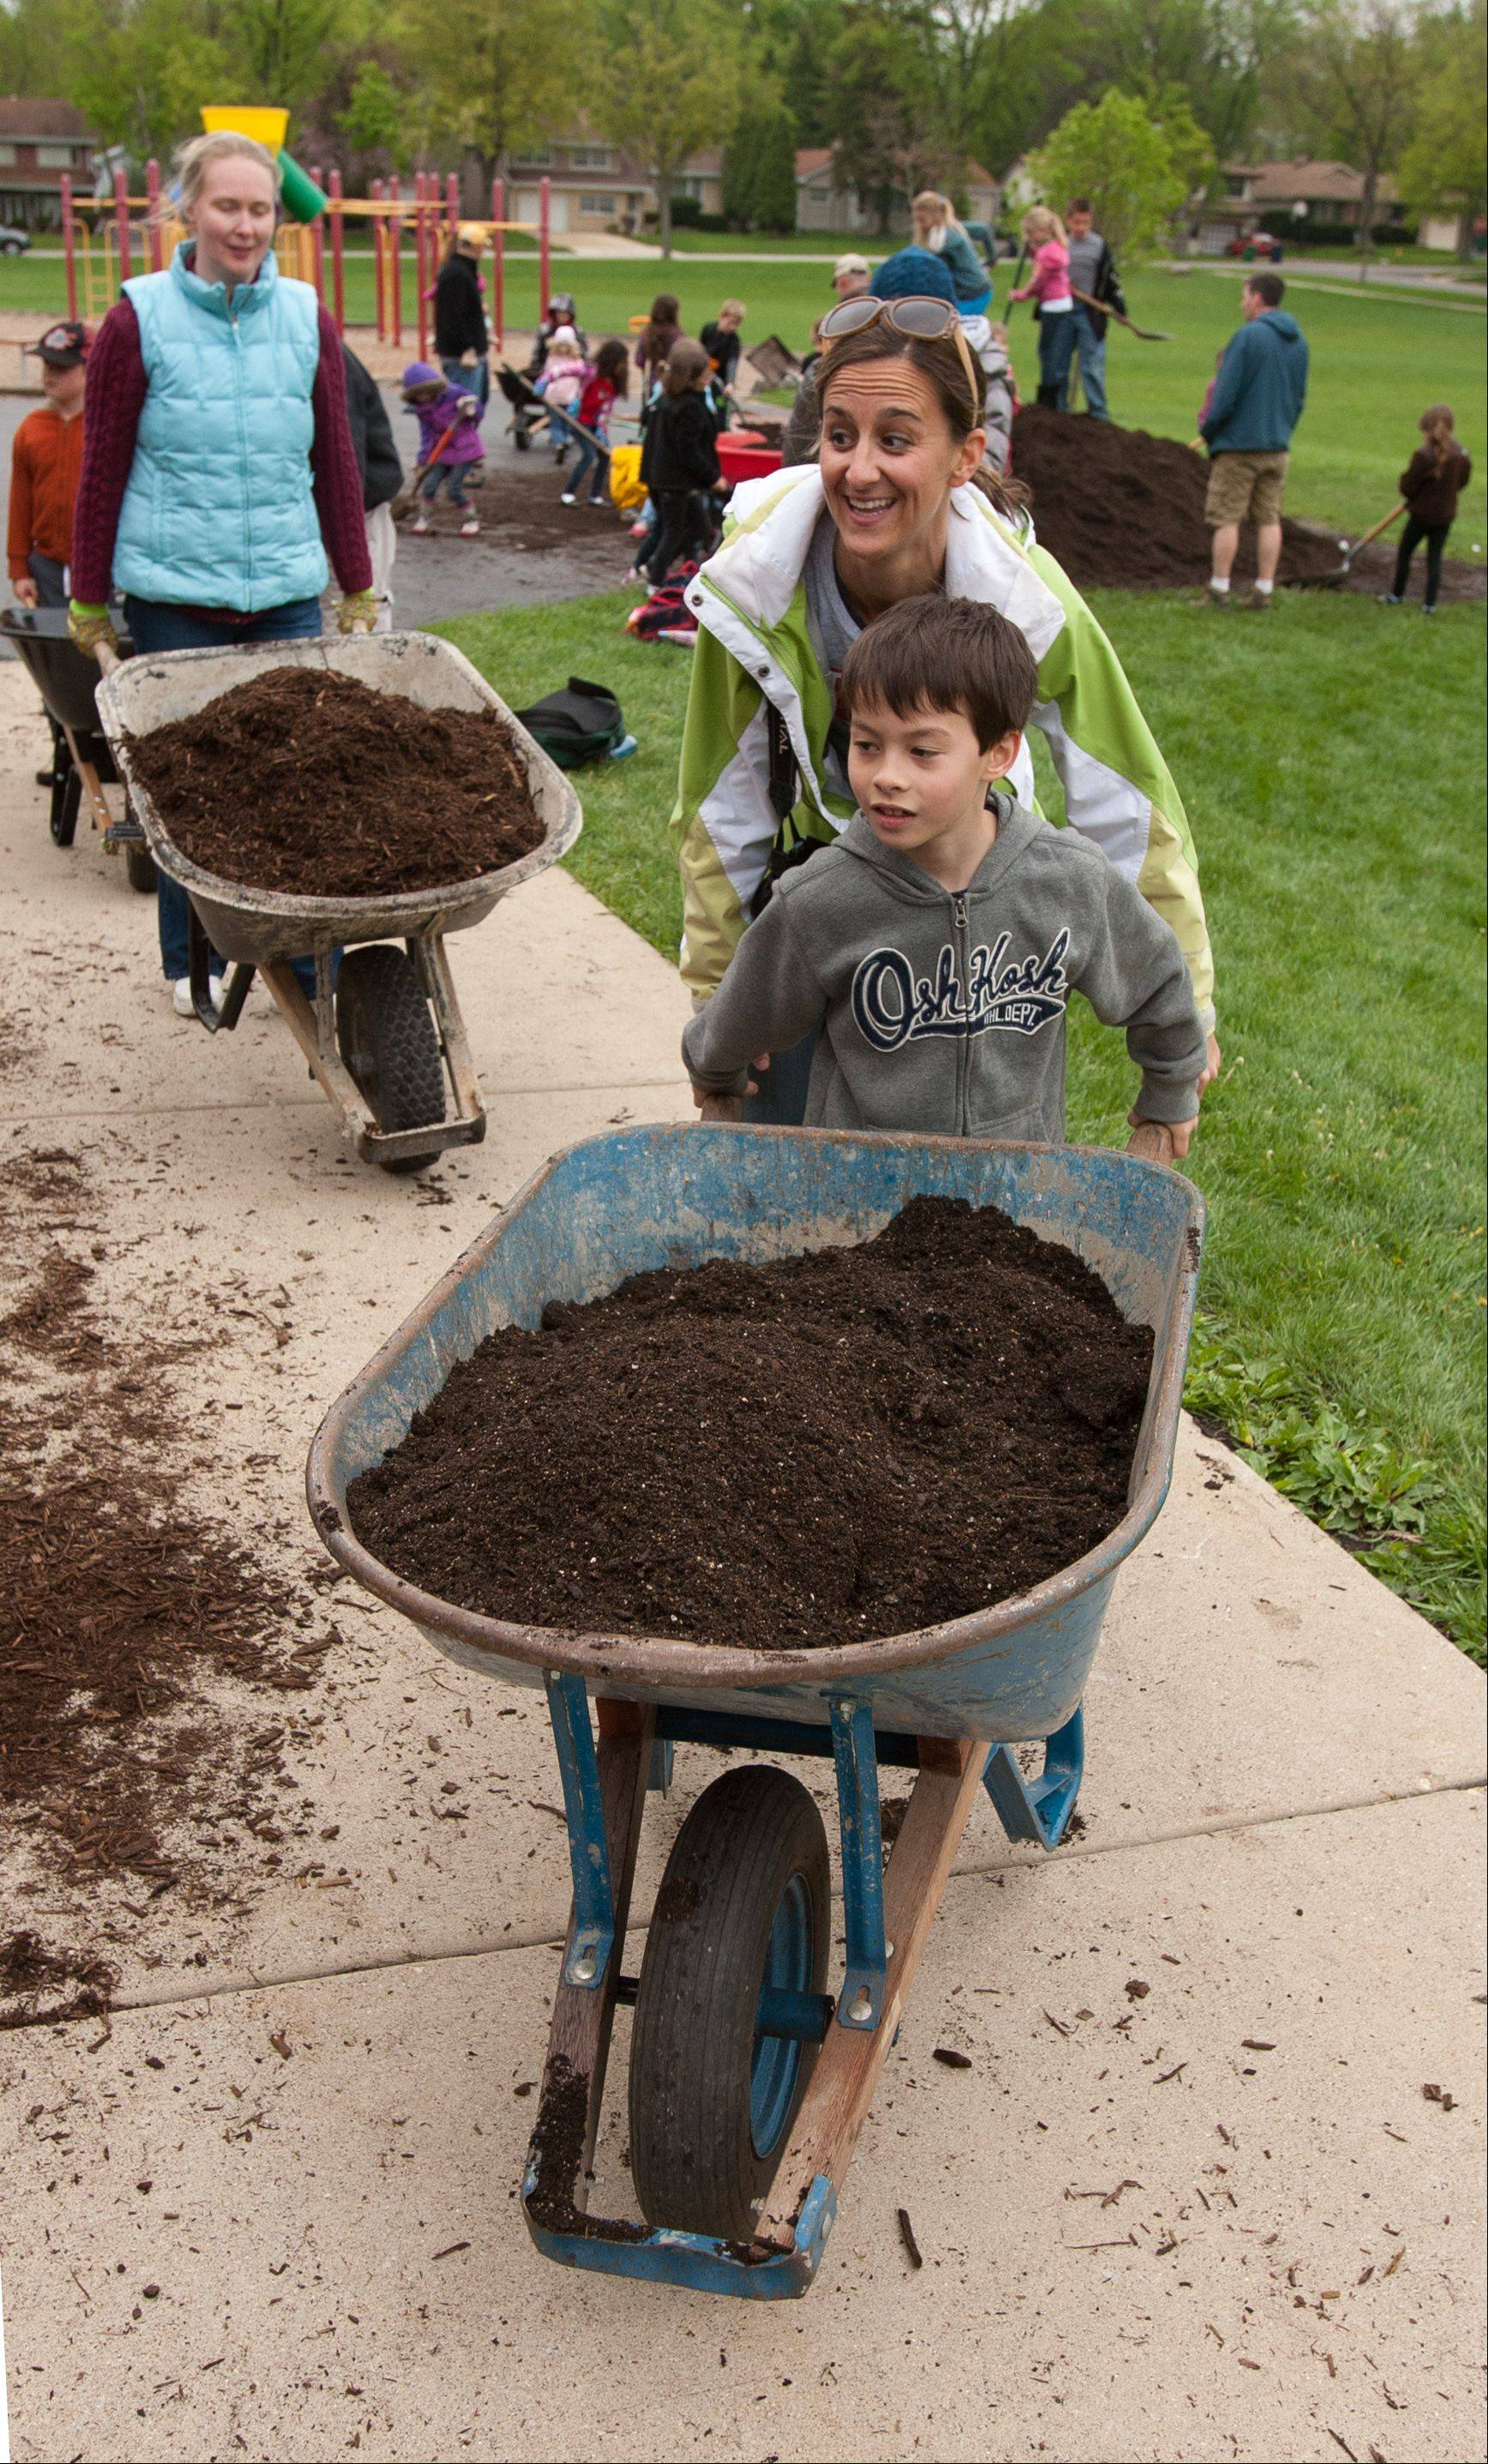 Andi Cooper and Dylan Howe, 7, of Lombard, along with other students and parents at Hammerschmidt School in Lombard, prepare garden beds for the Learn + Play gardens to be built at the school. Cooper is chairperson for Learn + Play.